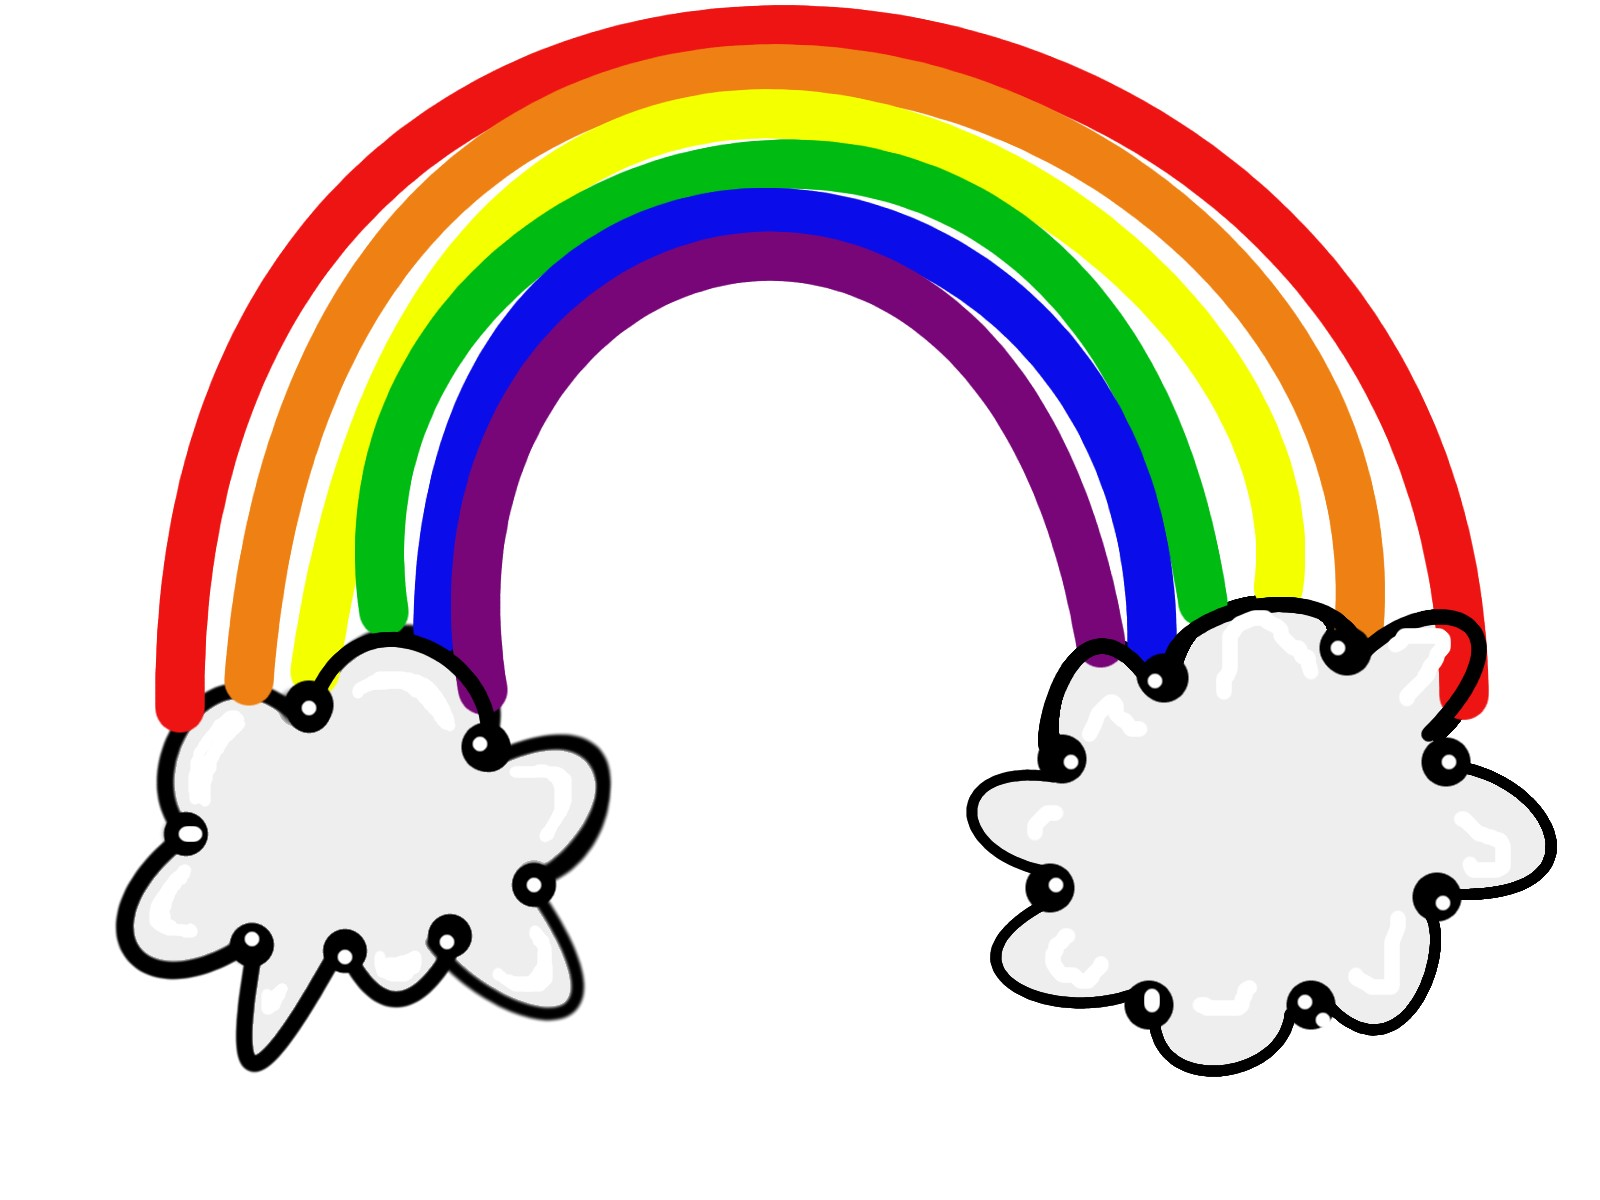 1600x1200 Rainbow Clip Art Inderecami Drawing